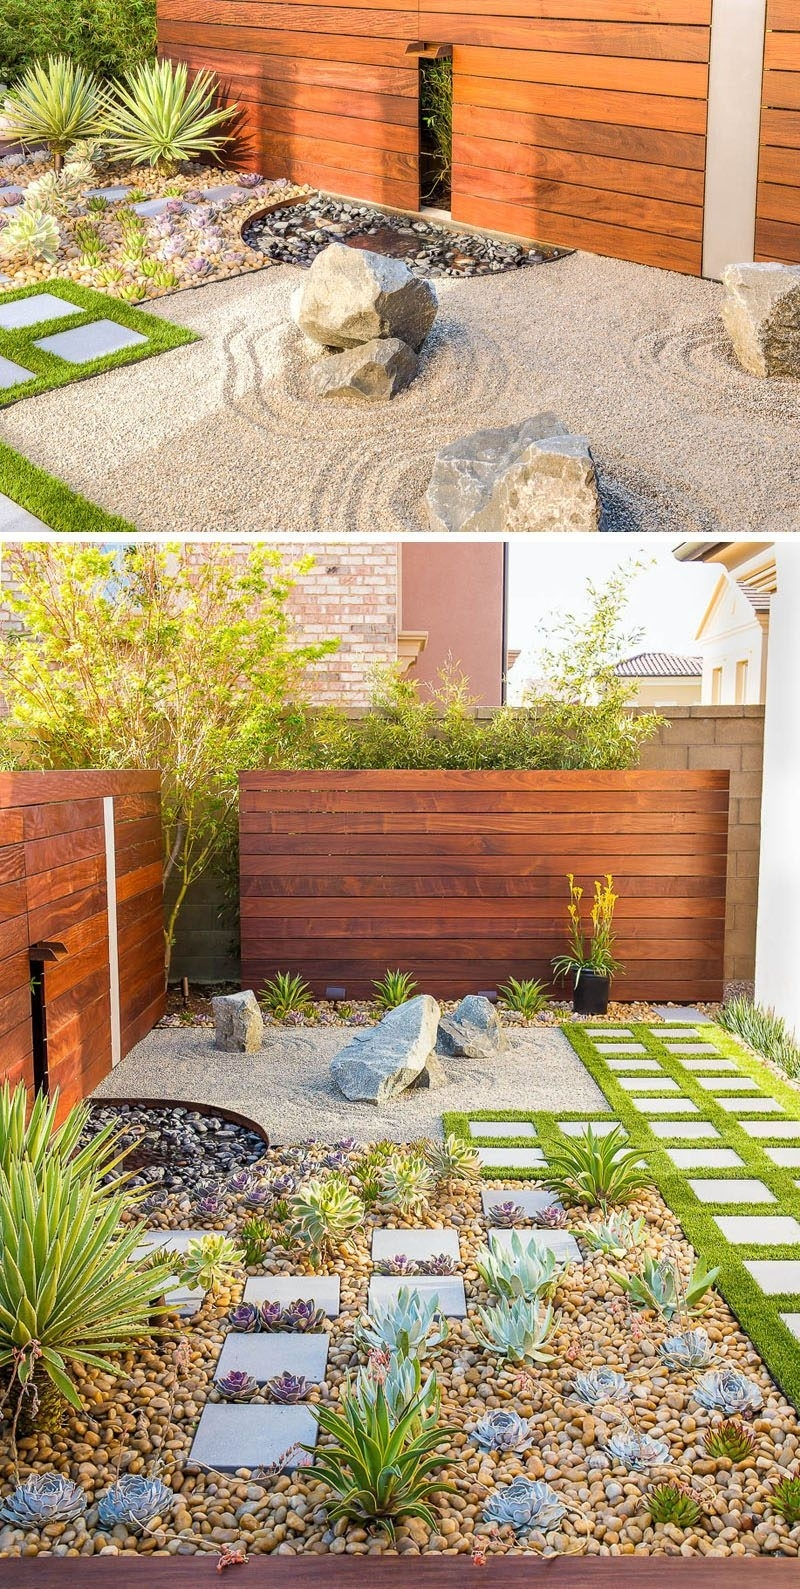 8 Elements To Include When Designing Your Zen Garden // Japanese with Zen Garden Design Elements